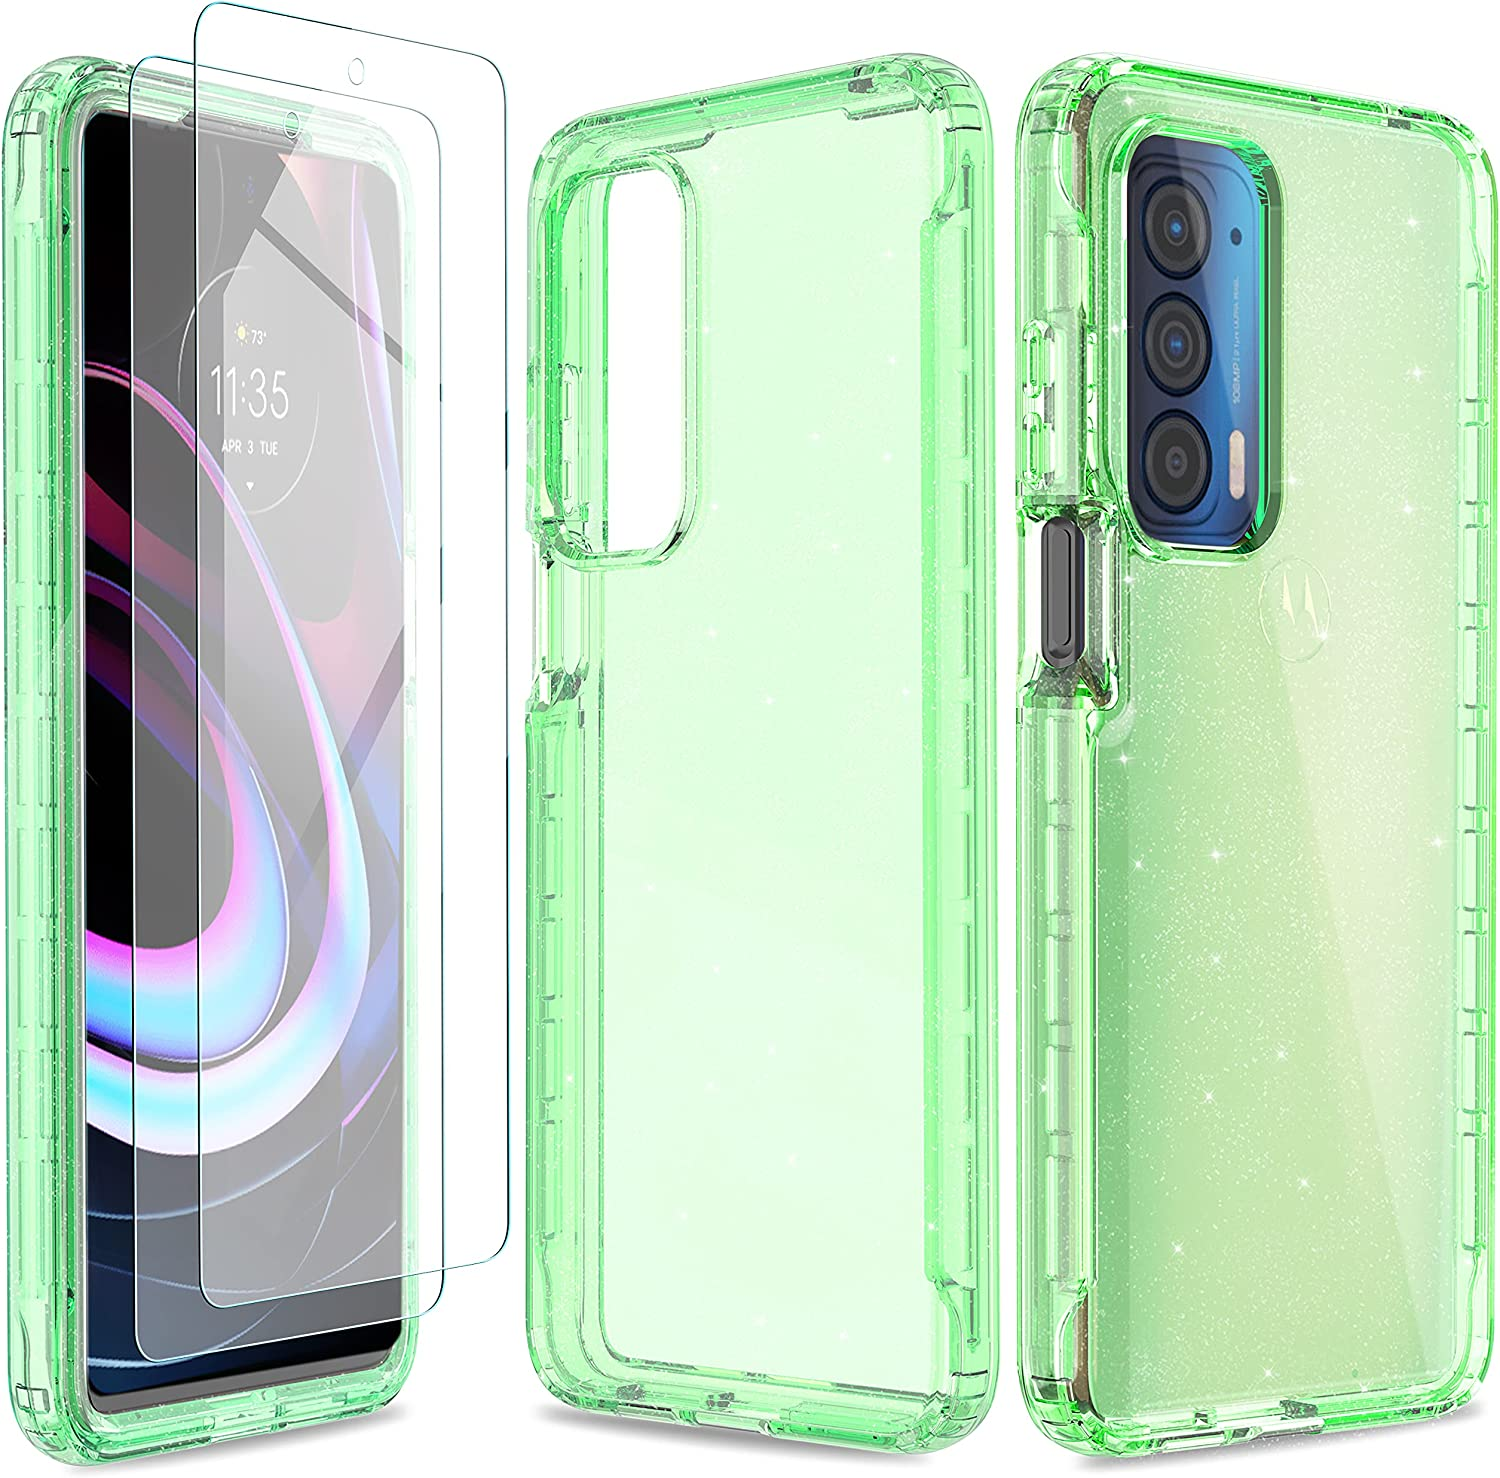 UNPEY for Motorola Moto Edge 2021 Case with 2 Tempered Glass Screen Protector,Glitter Sparkle Shockproof Cell Phone Cover,Slim Bling Case for Moto Edge 2021 6.8'' Green Glitter